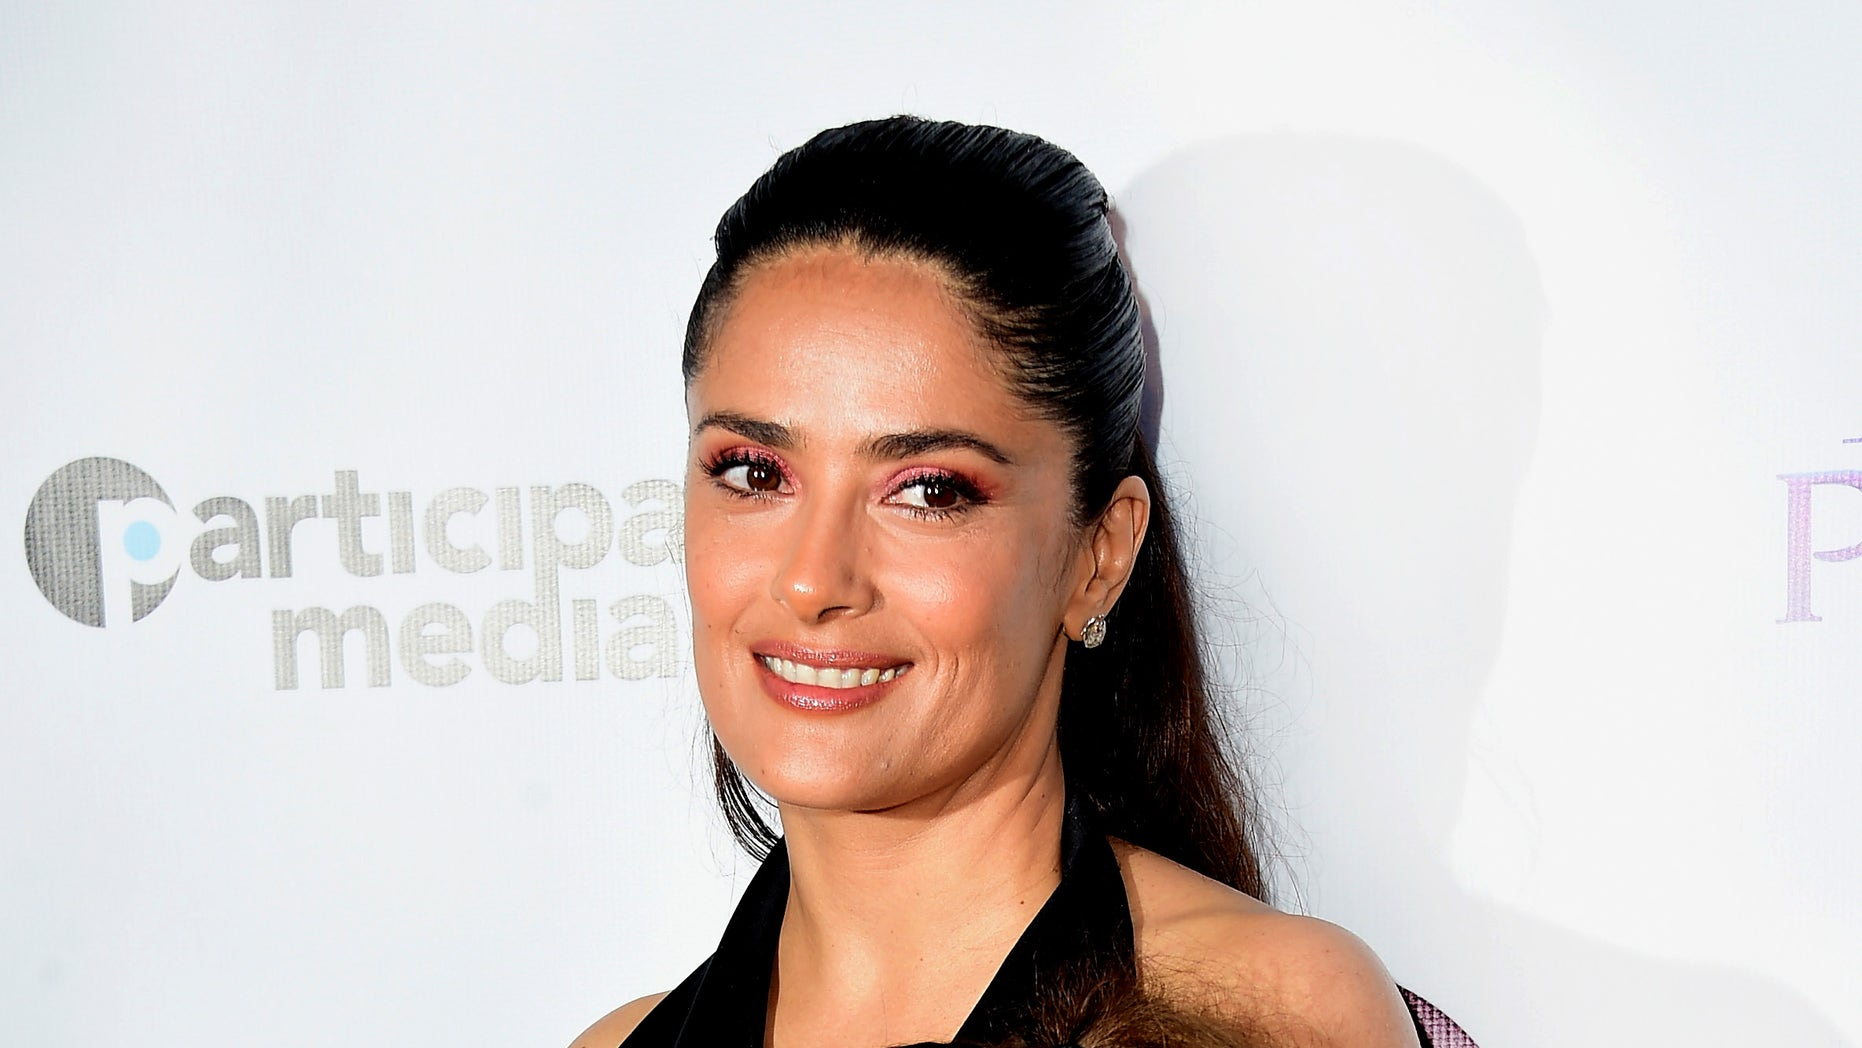 """LOS ANGELES, CA - JULY 29:  Actress Salma Hayek and daughter Valentina Paloma Pinault arrive at the Screening of GKIDS' """"Kahlil Gibran's The Prophet"""" at Bing Theatre At LACMA on July 29, 2015 in Los Angeles, California.  (Photo by Frazer Harrison/Getty Images)"""